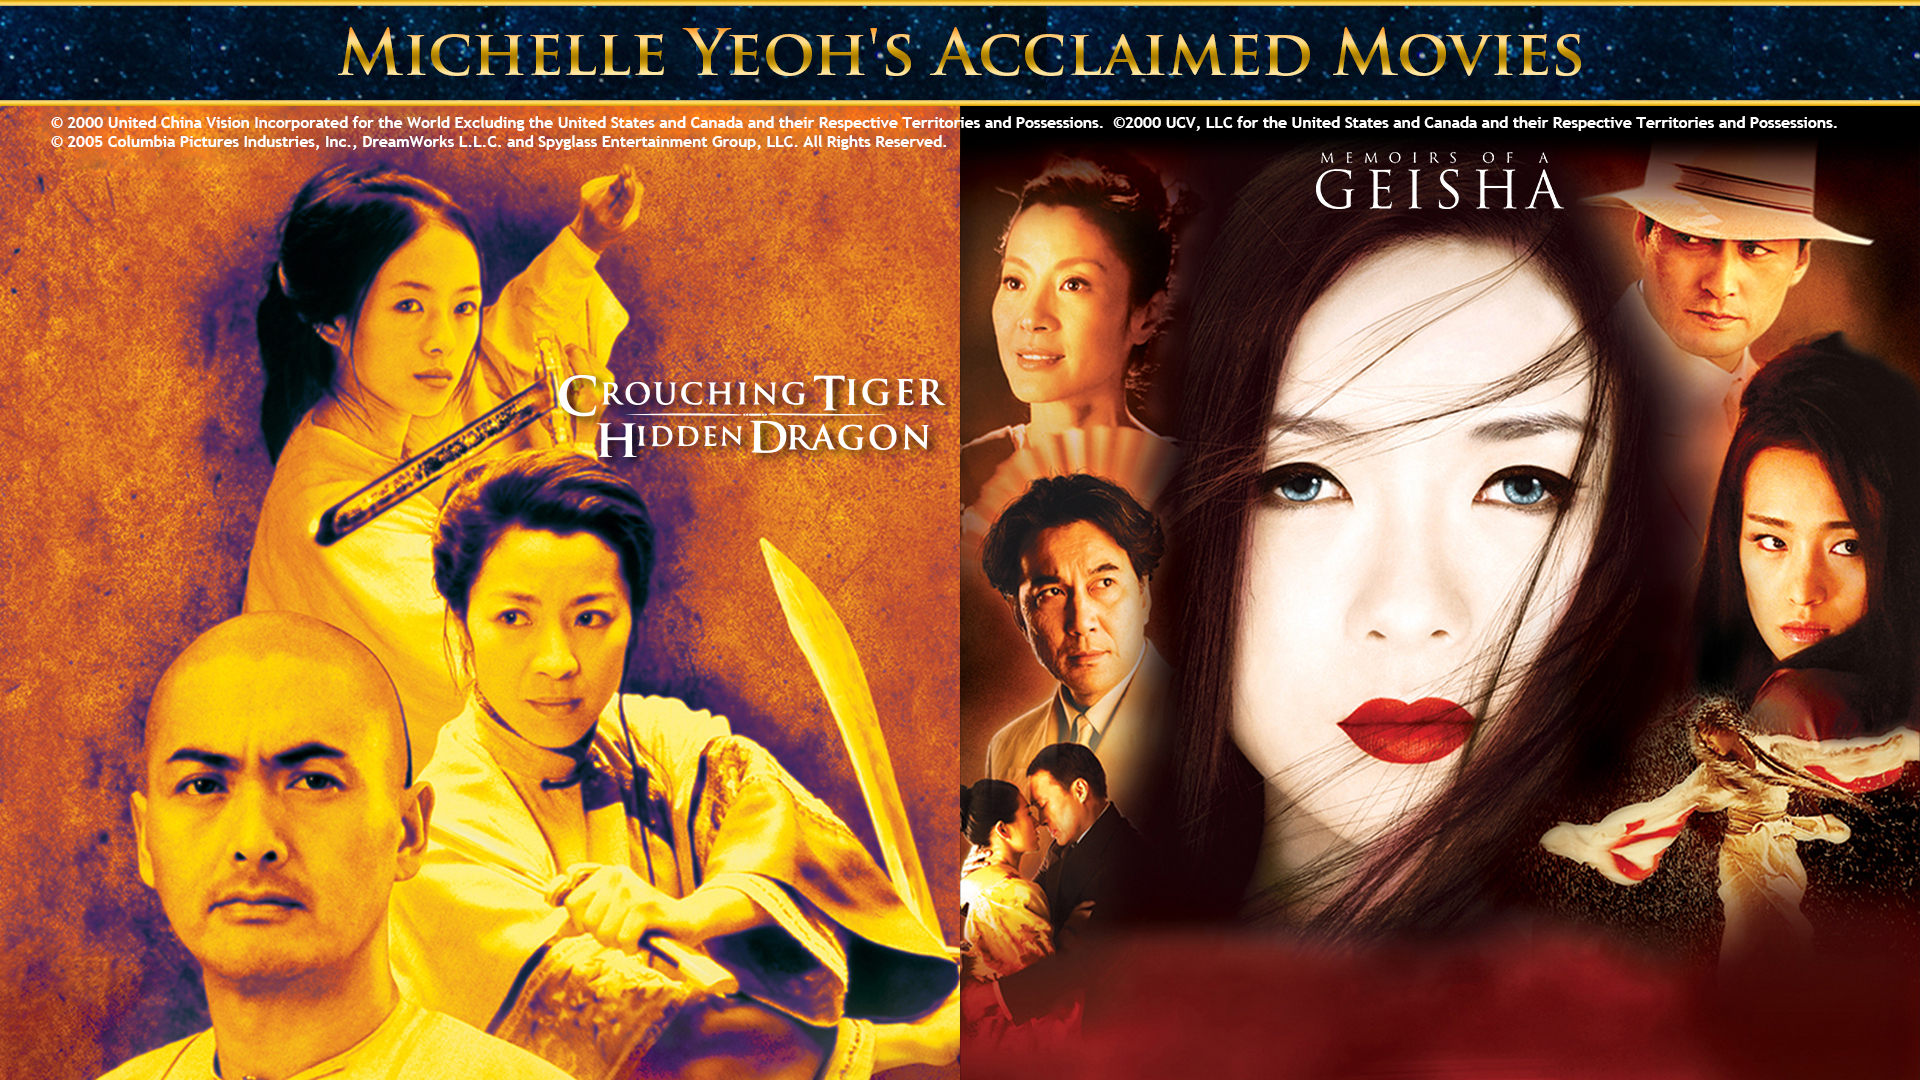 MICHELLE YEOH'S ACCLAIMED MOVIES